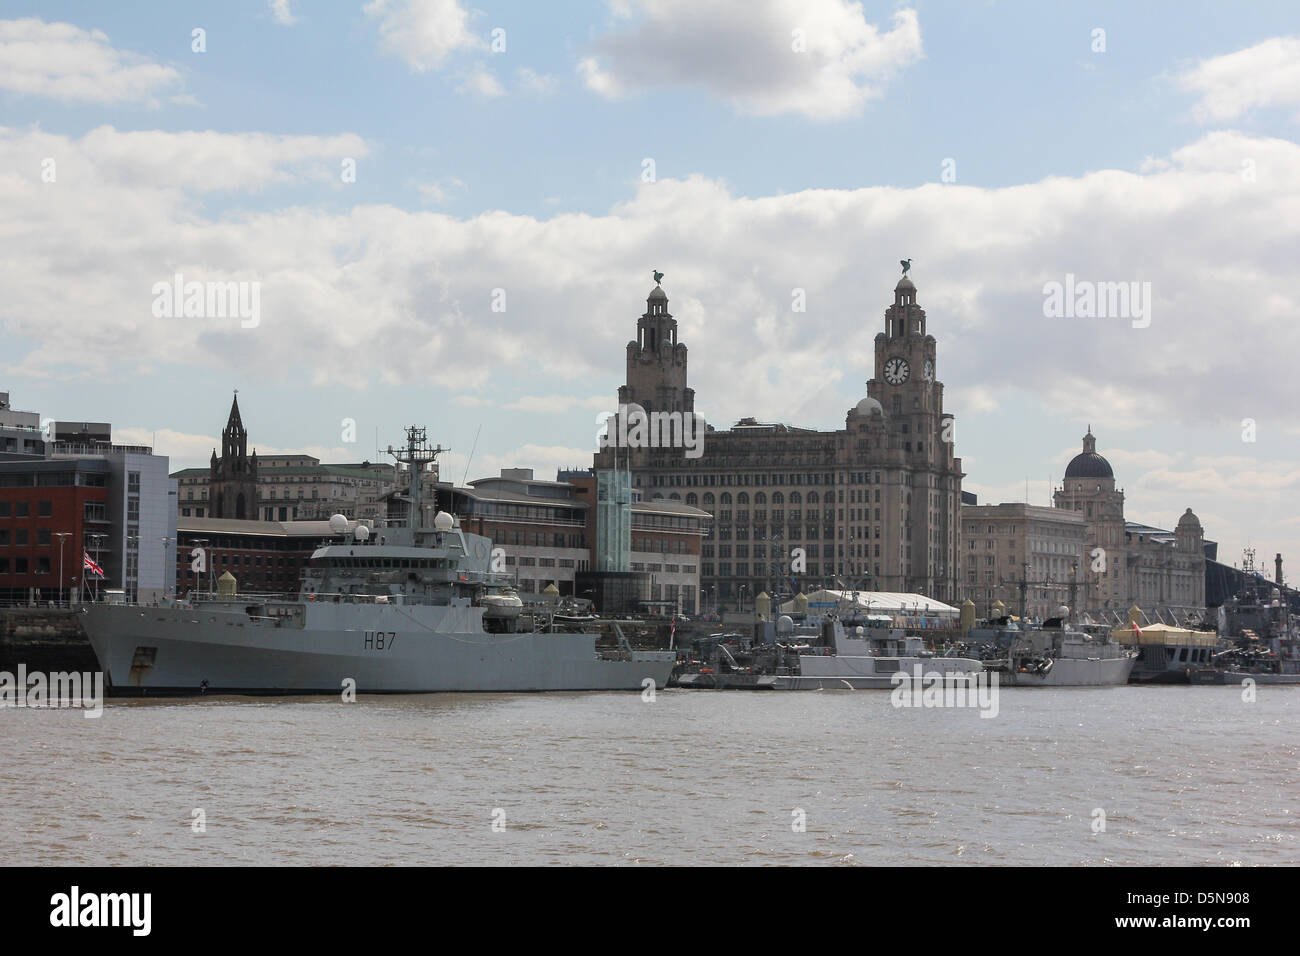 Liverpool, UK. 5th April 2013. Seven warships are berthed at Liverpool's cruise terminal for a weekend visit to - Stock Image